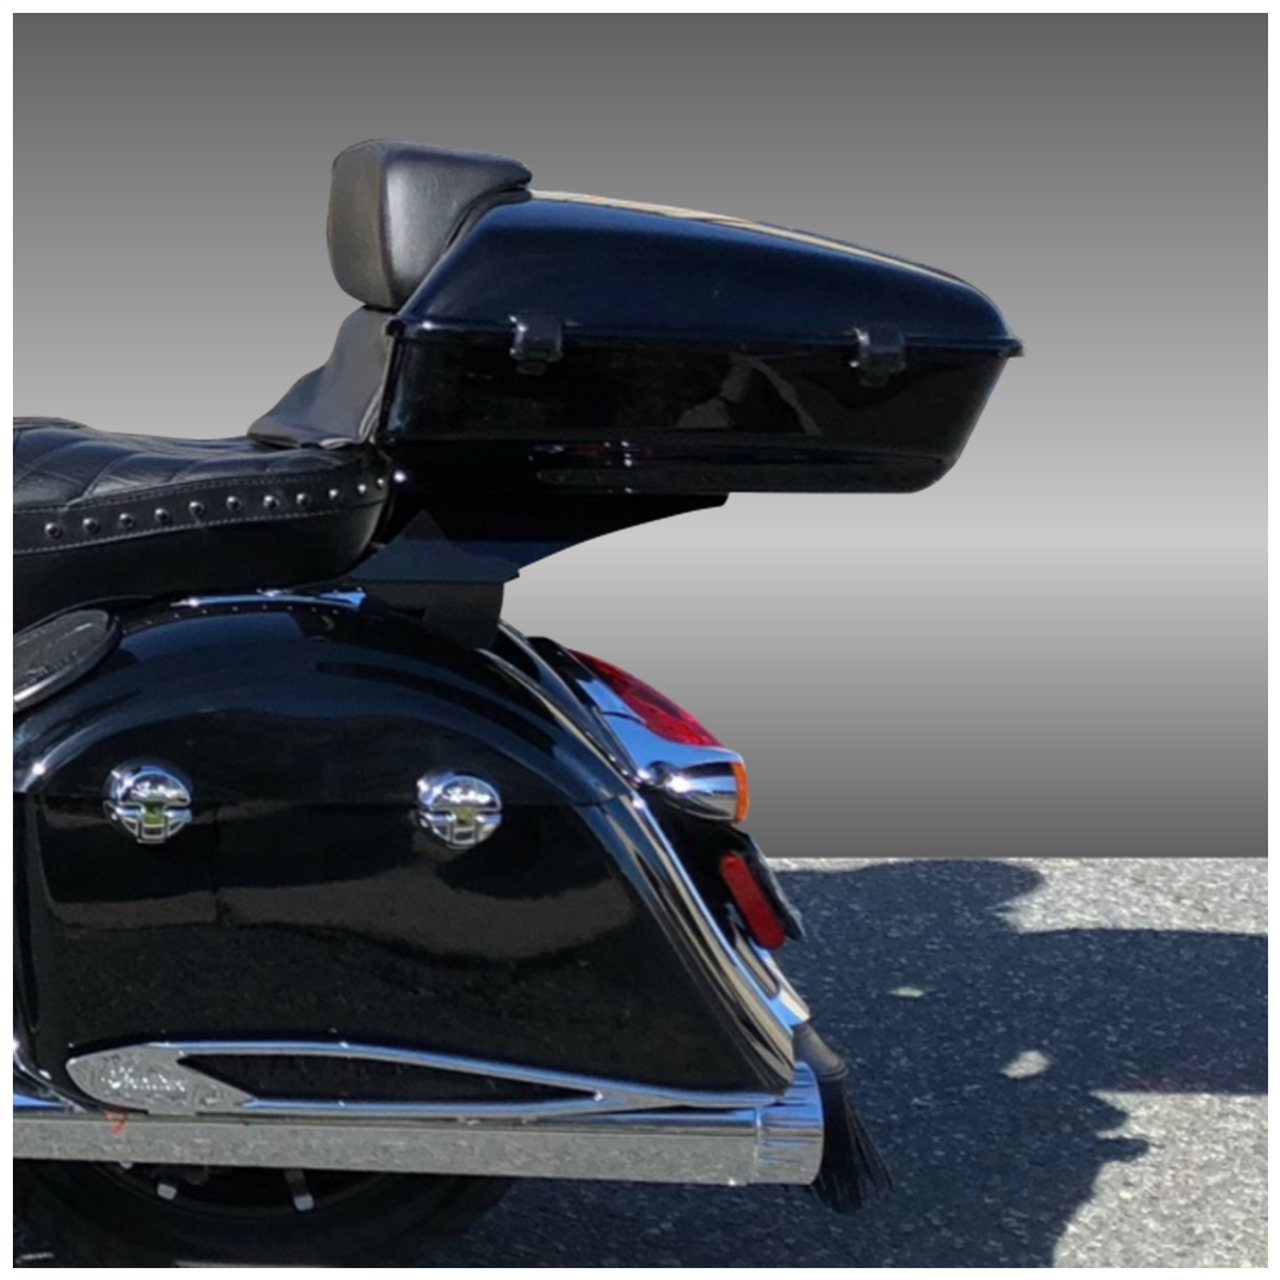 Slim Tour Pack System for 2014+ INDIAN Motorcycles